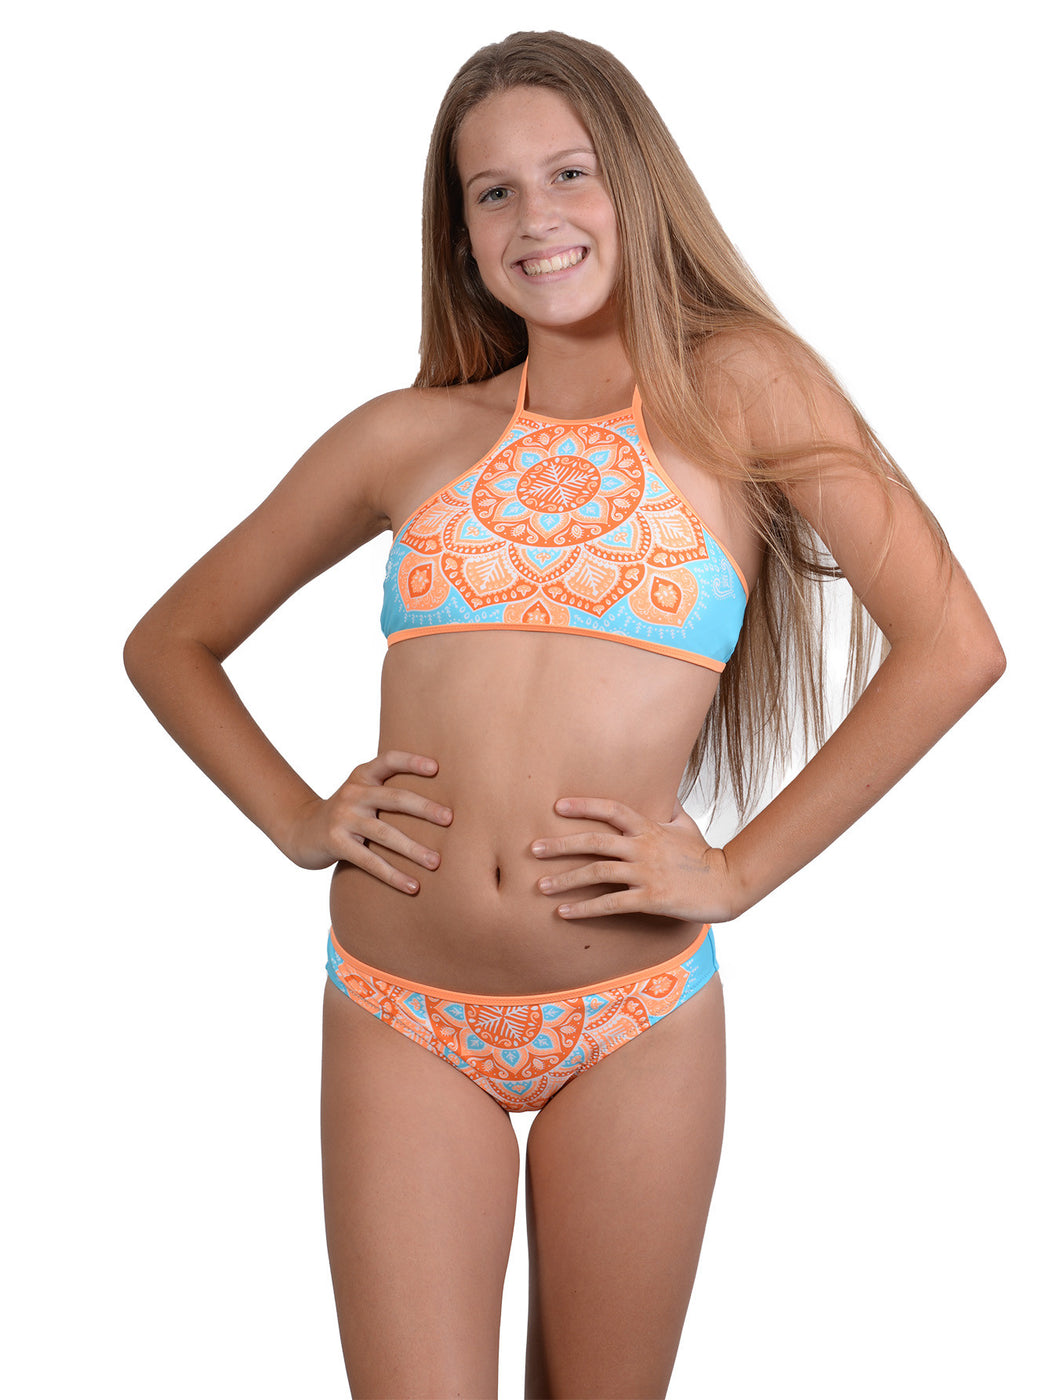 Finch Girls bikini with active high neck top and hipster bottoms in Crush colour